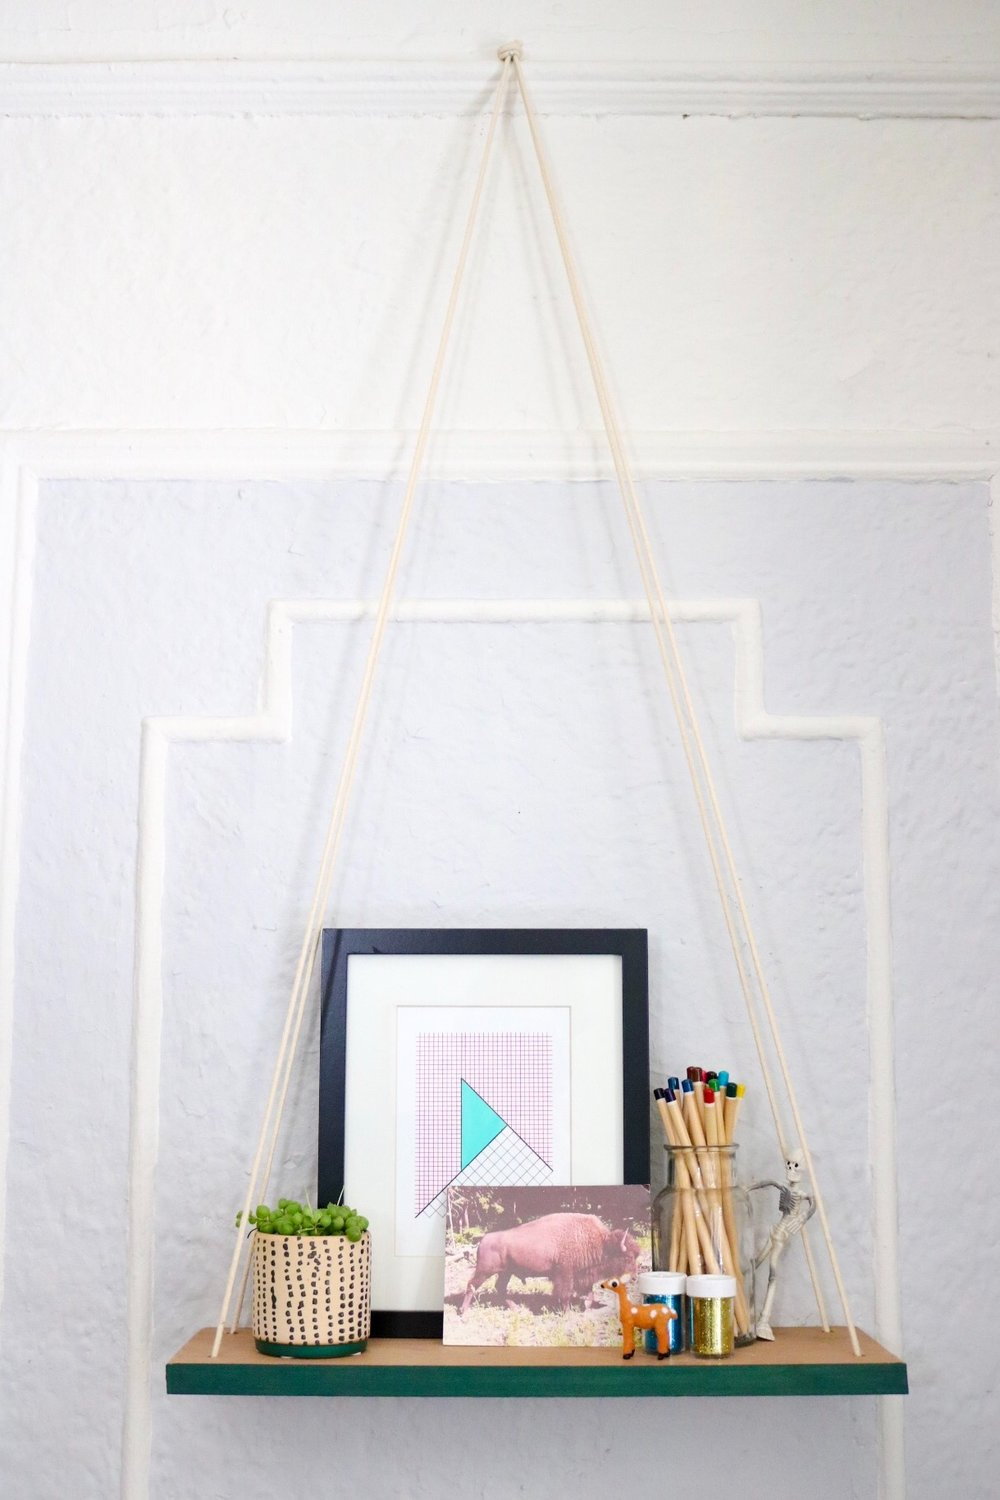 DIY Swing Shelf from Crafty Lumberjacks